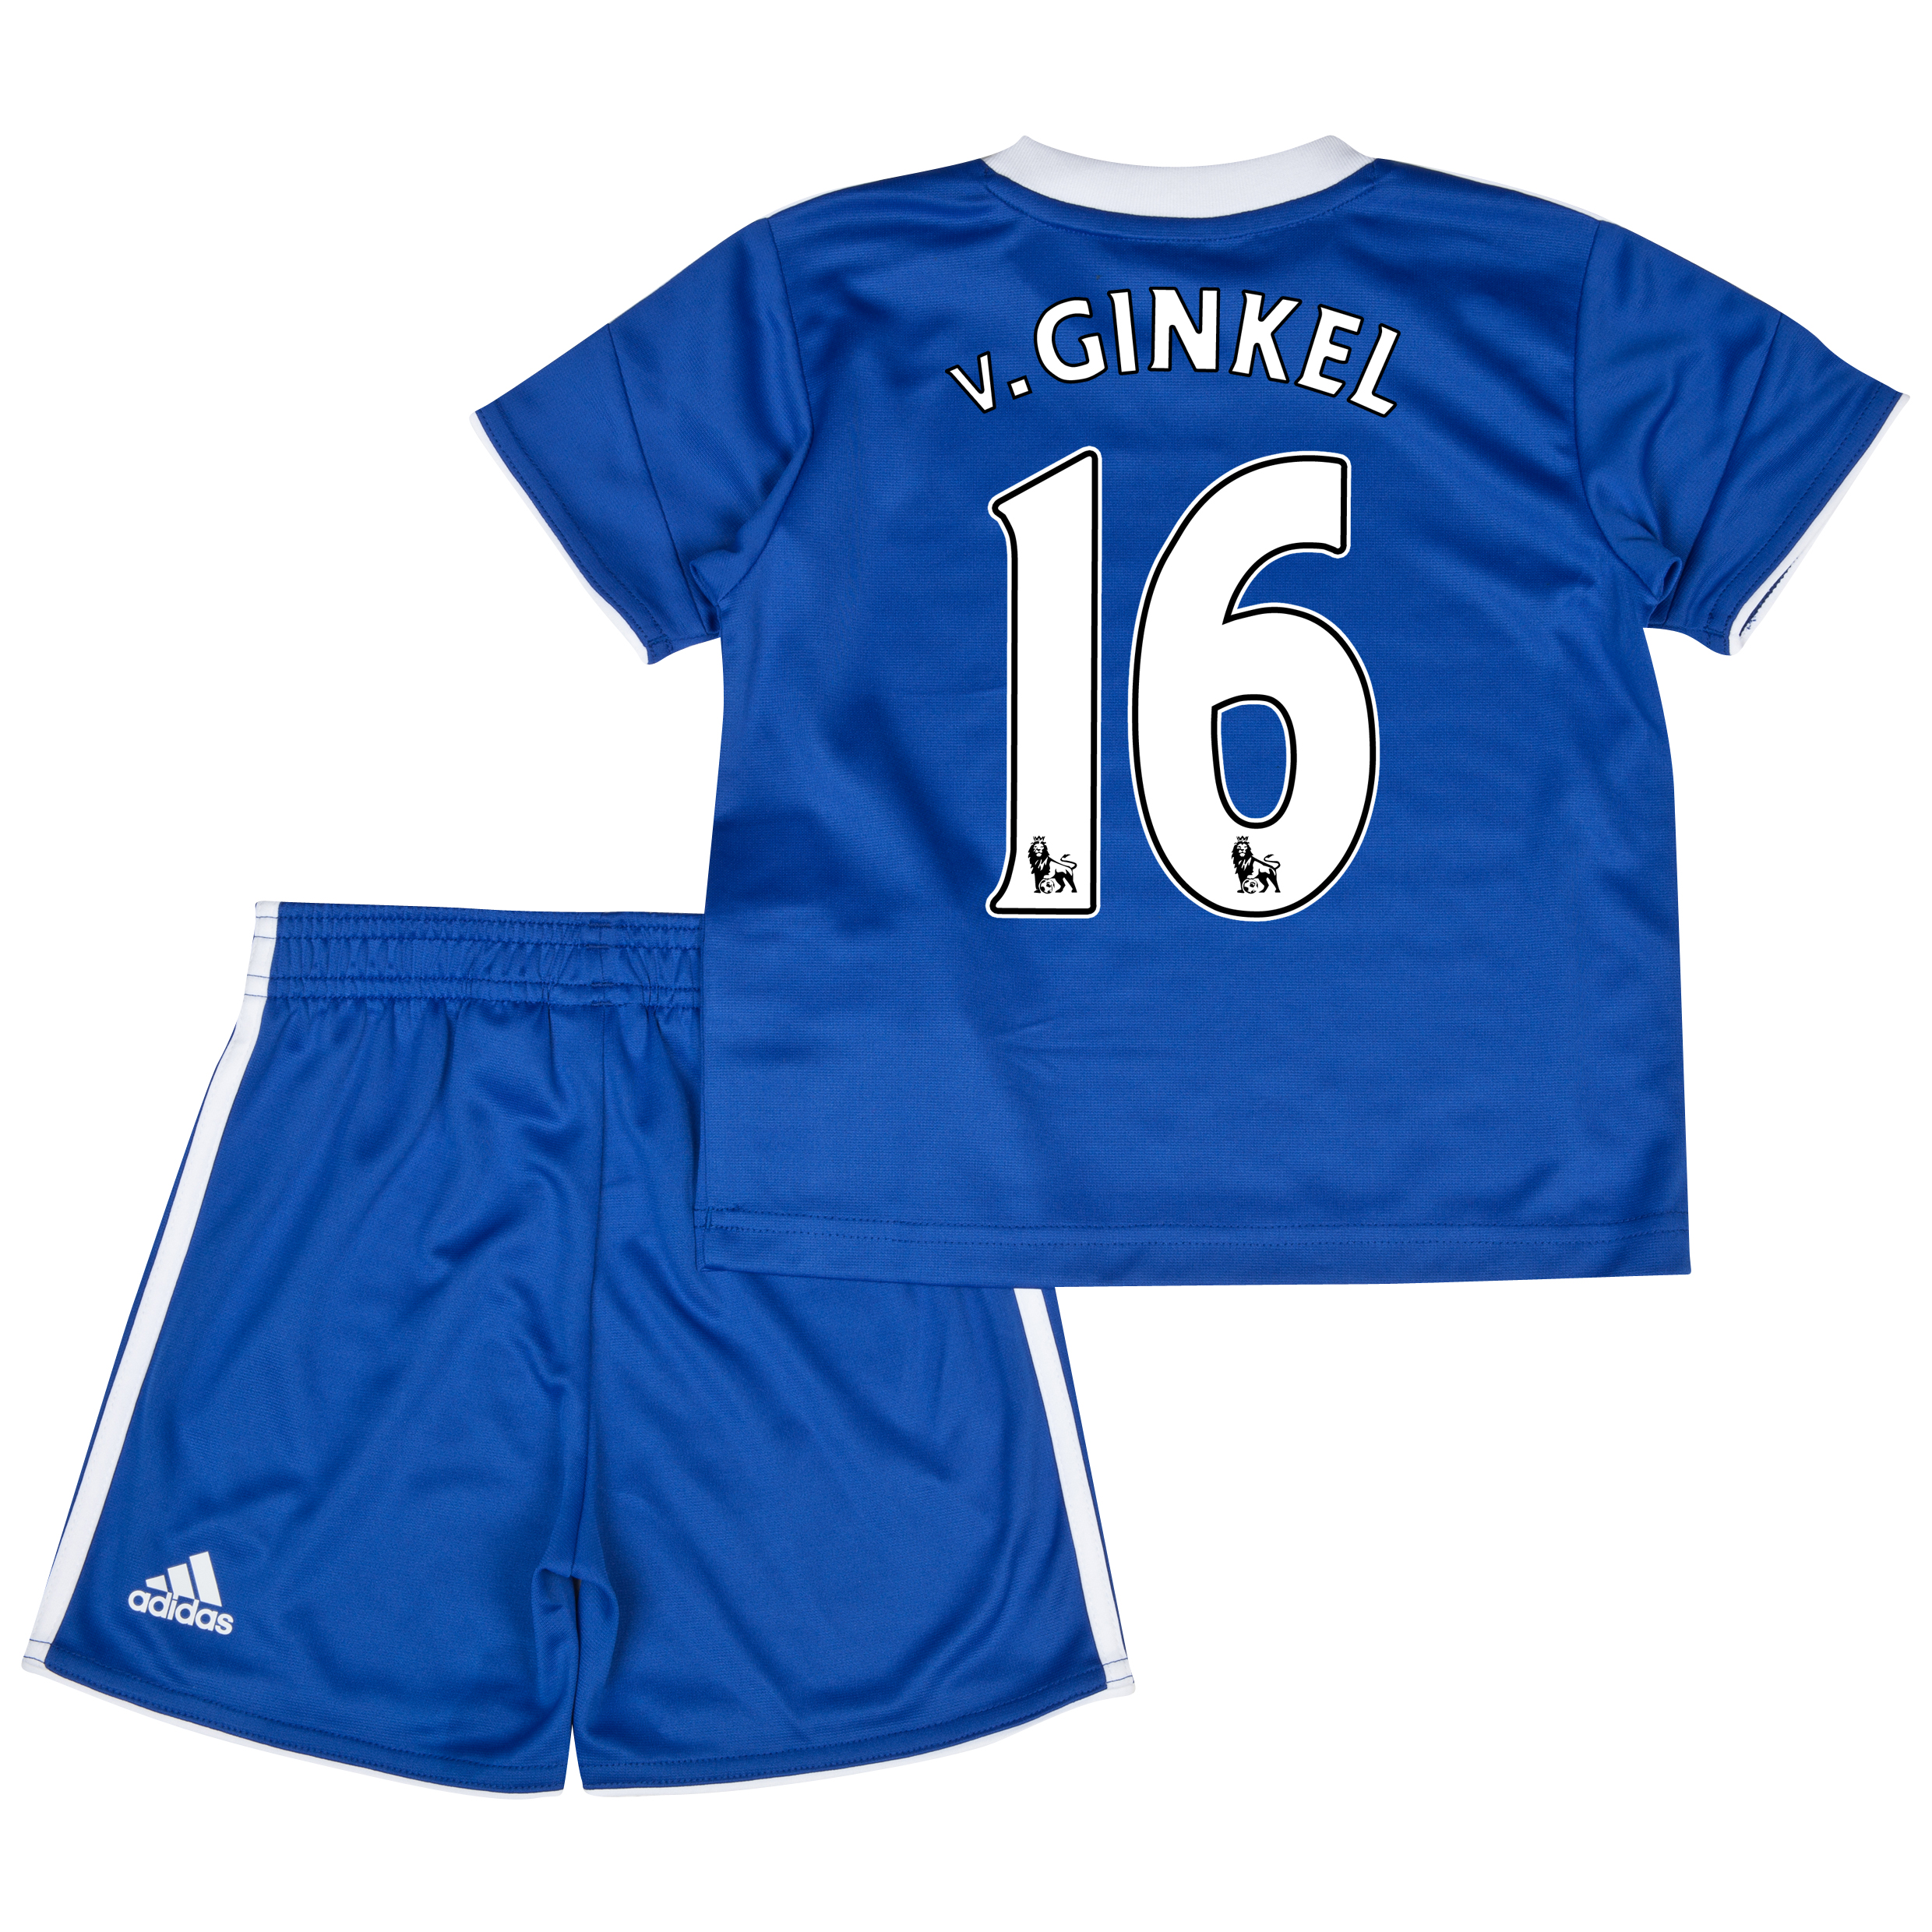 Chelsea Home Mini Kit 2013/14 with v.Ginkel 16 printing